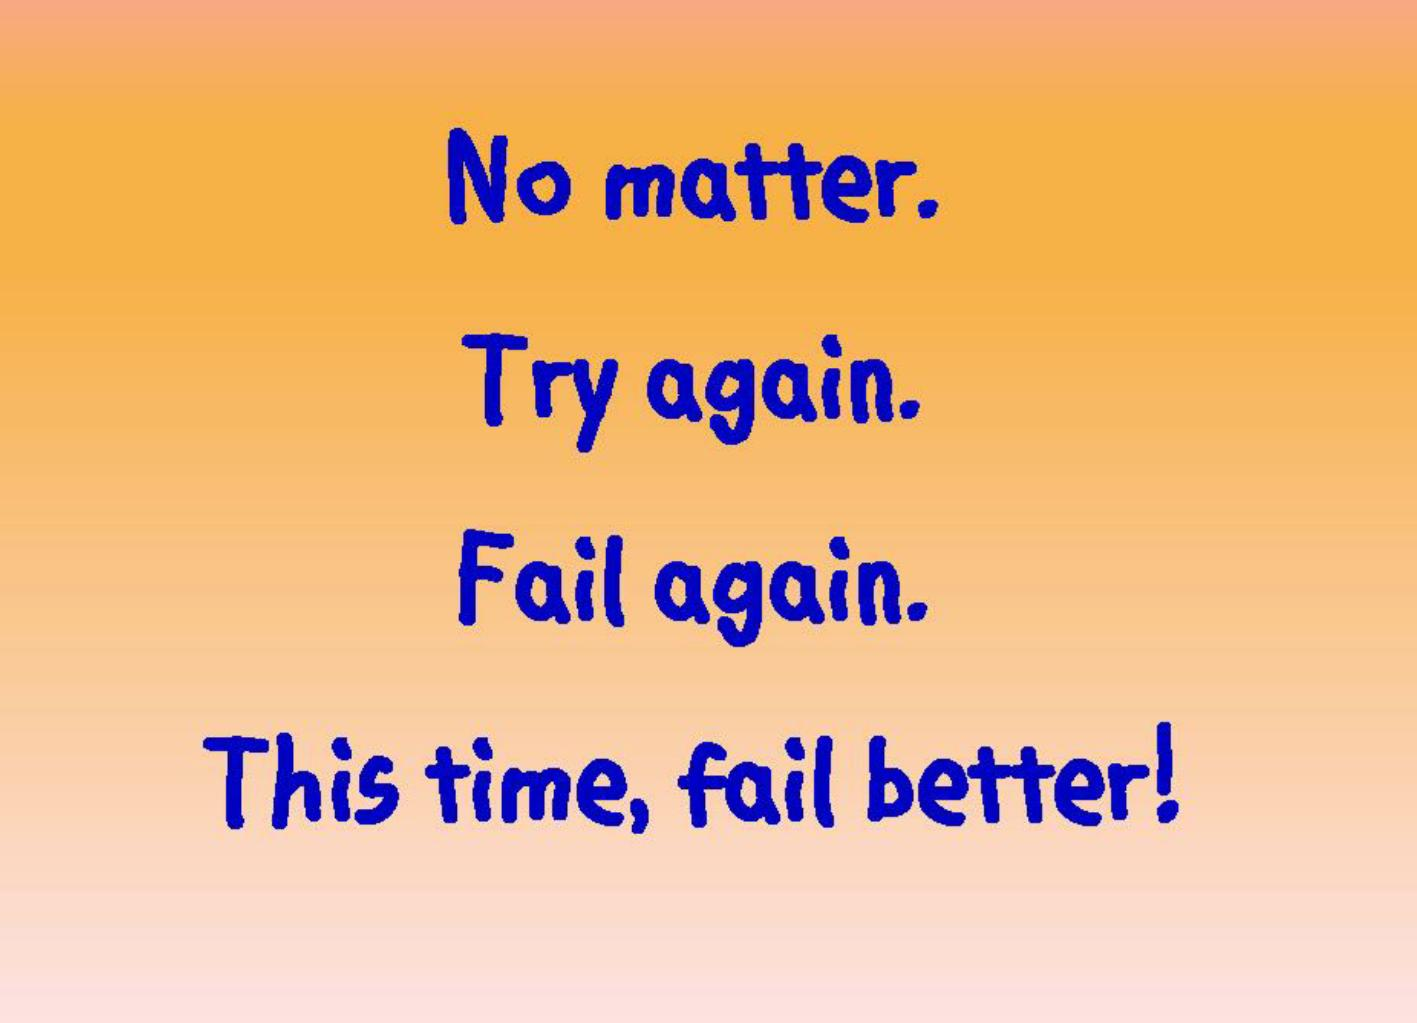 Encouraging you to fail better on near a river.